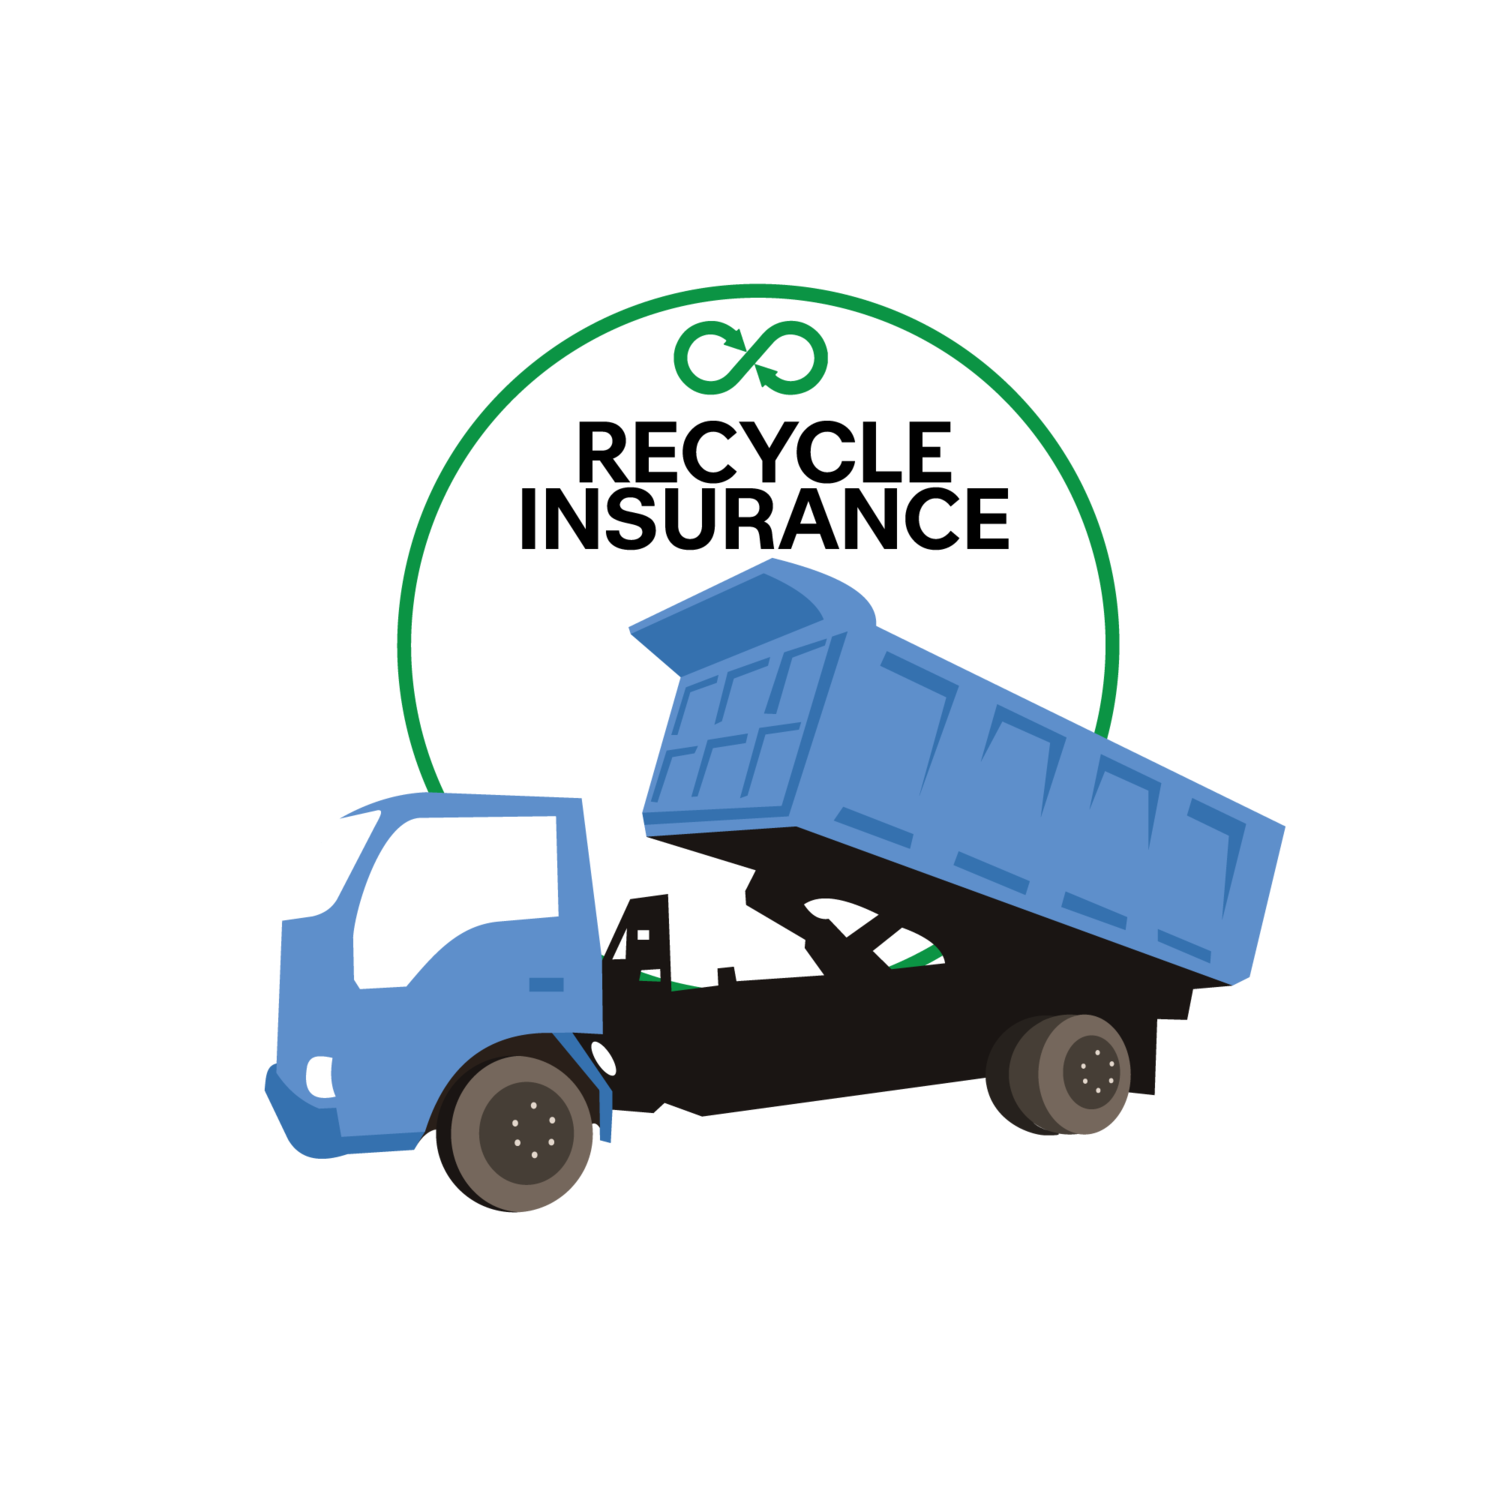 Recycling Insurance